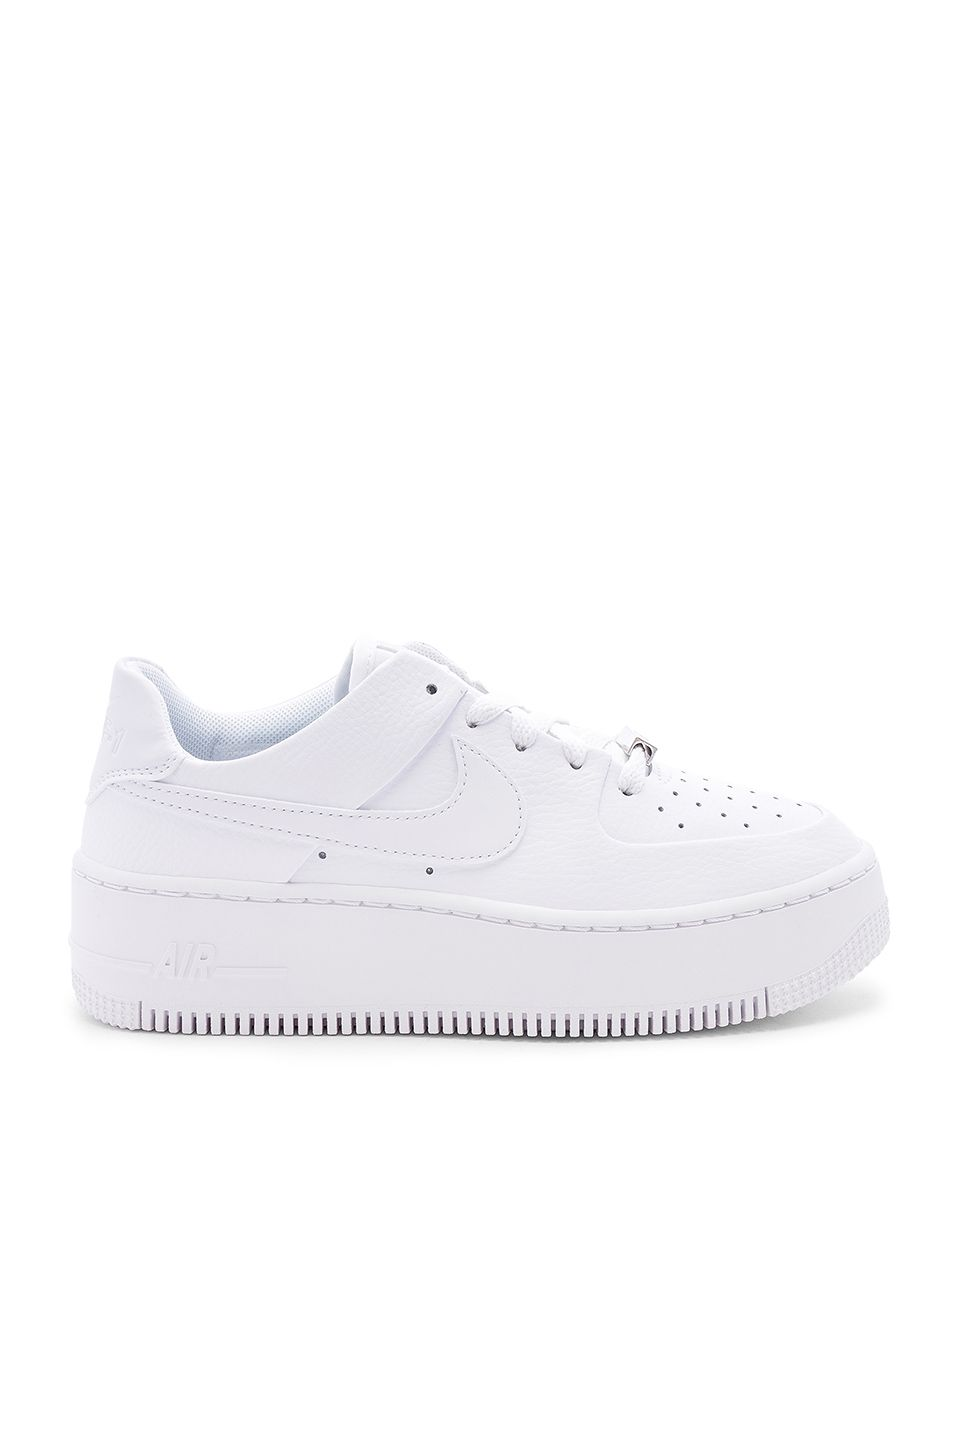 27906bf4fdbb Nike Air Force 1 Sage Low Sneaker in White